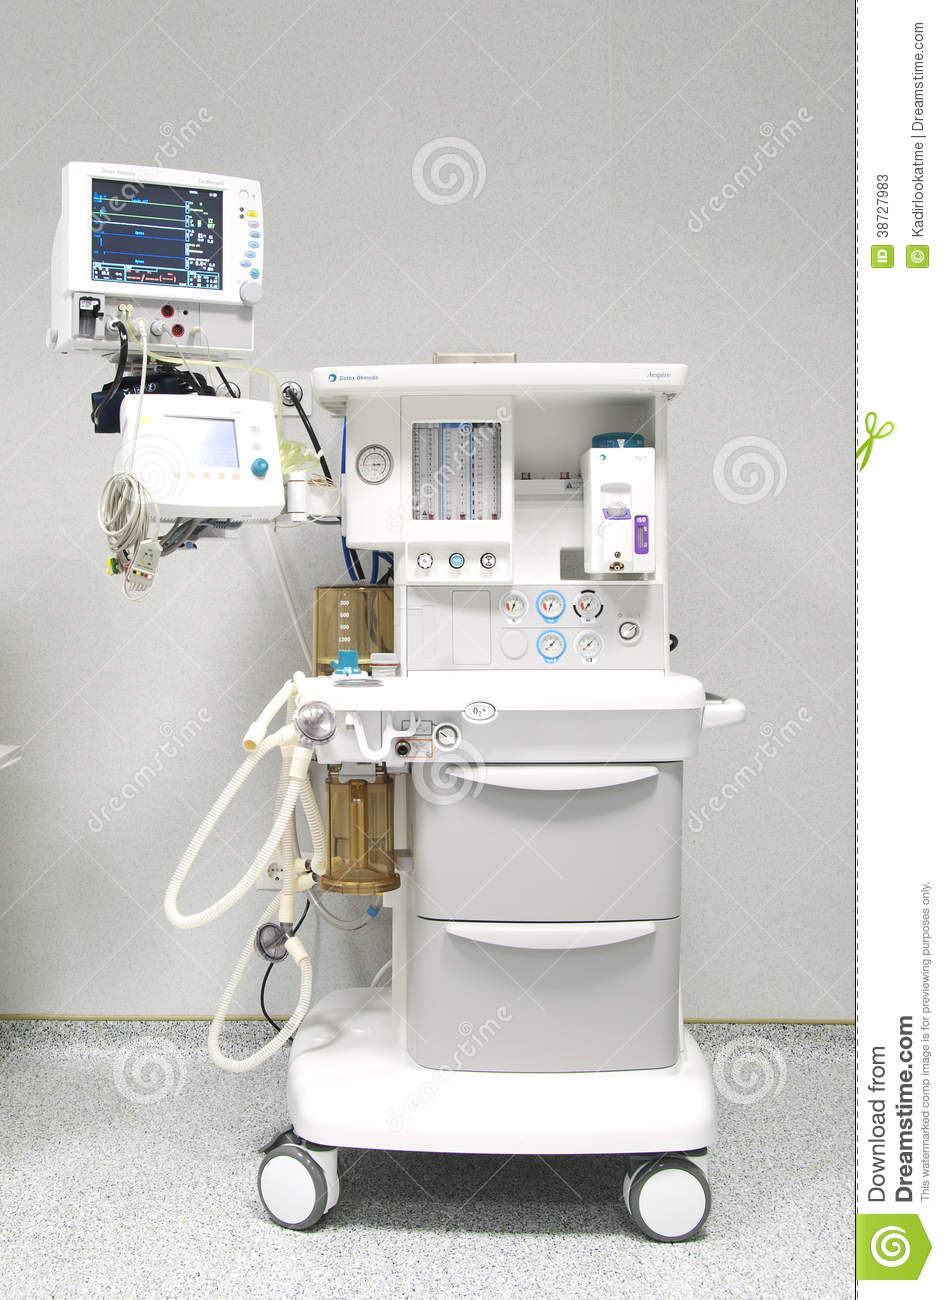 La chambre d 39 h pital des enfants photo stock ditorial for Chambre d hopital